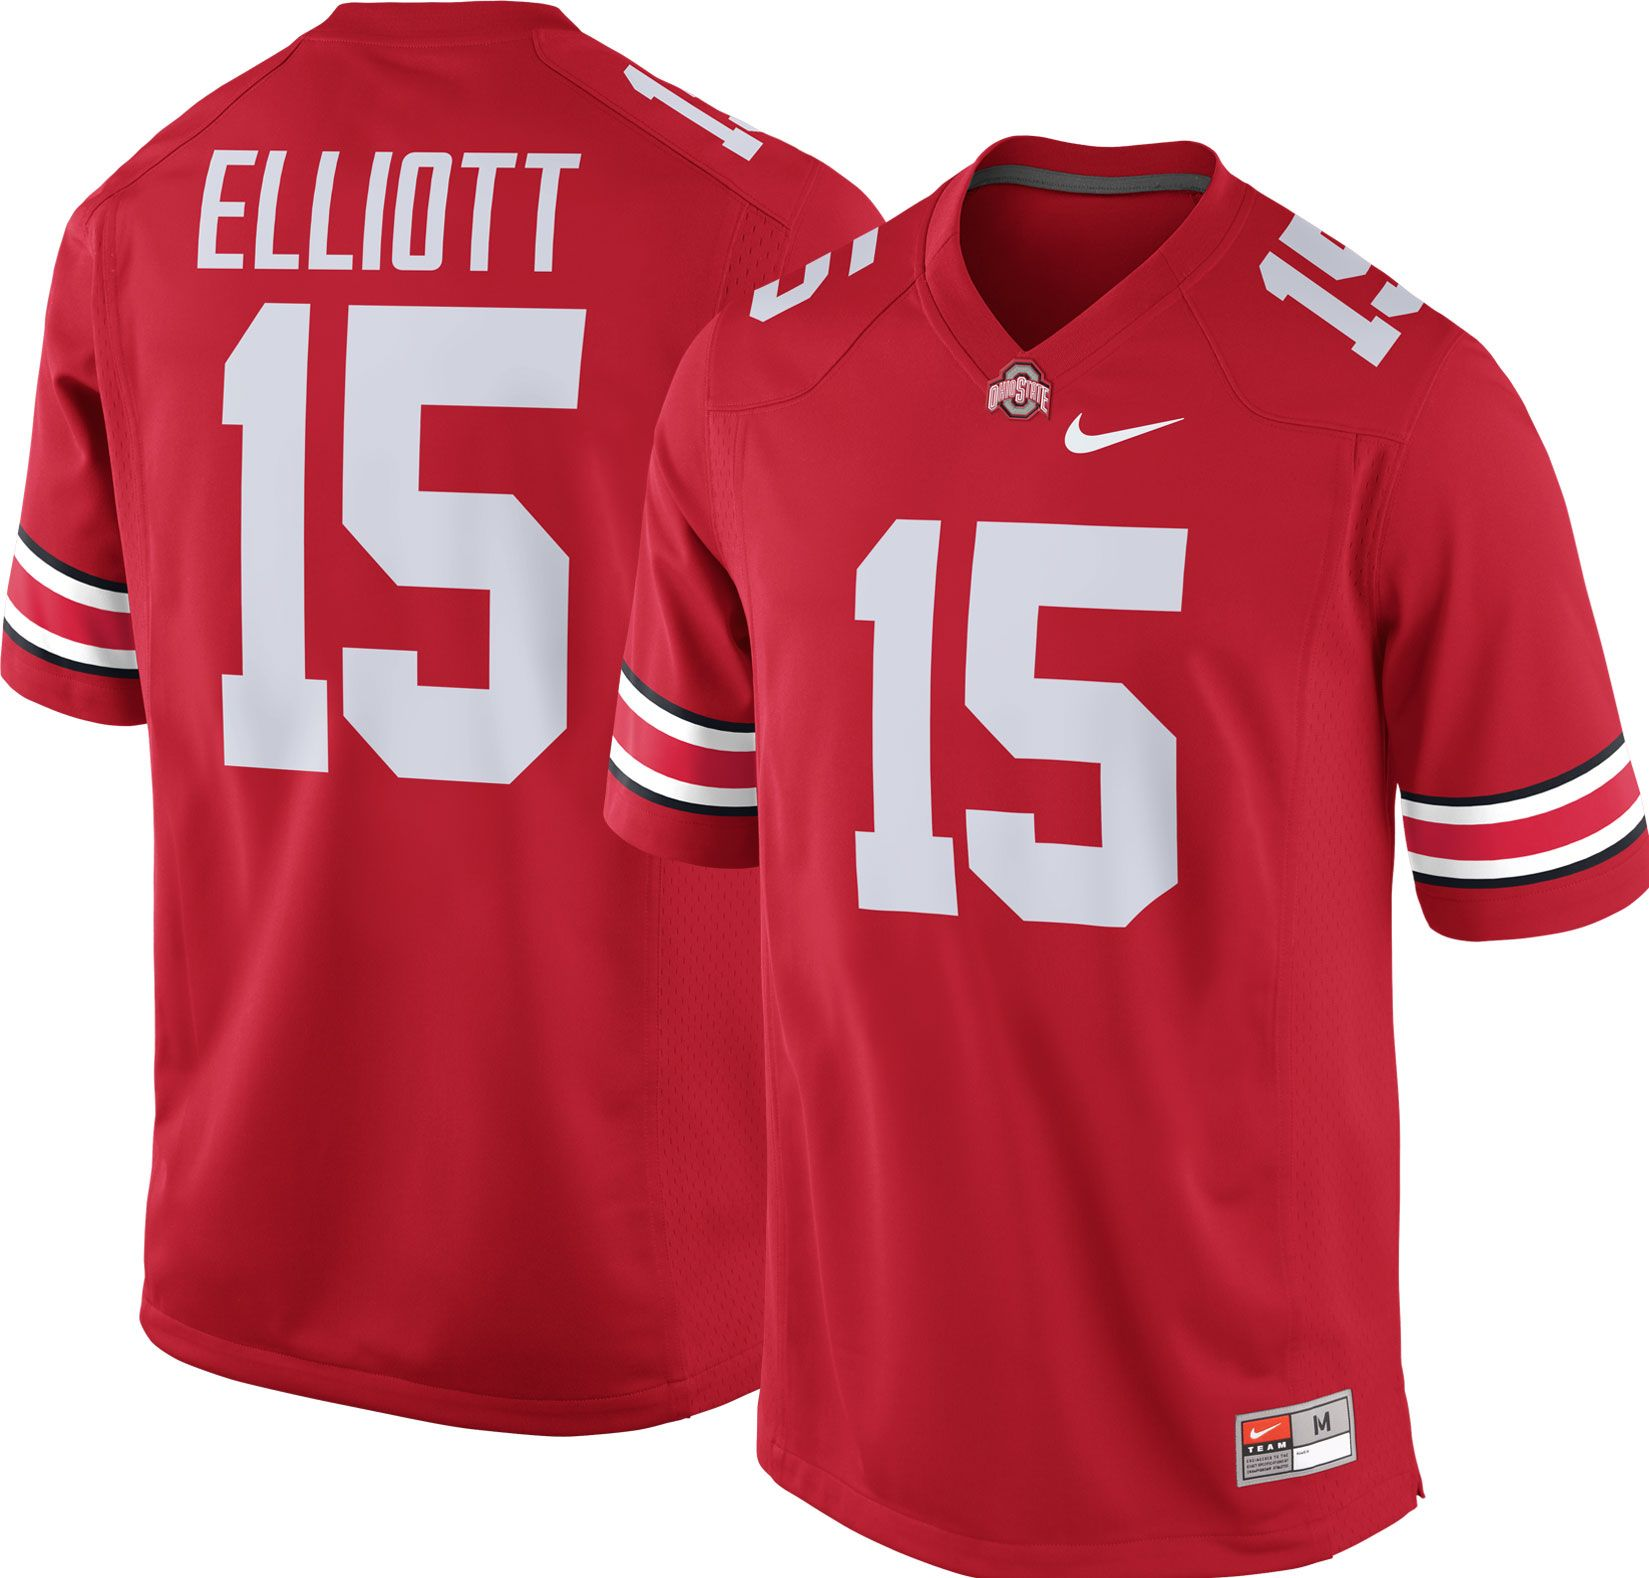 ohio state black limited jersey